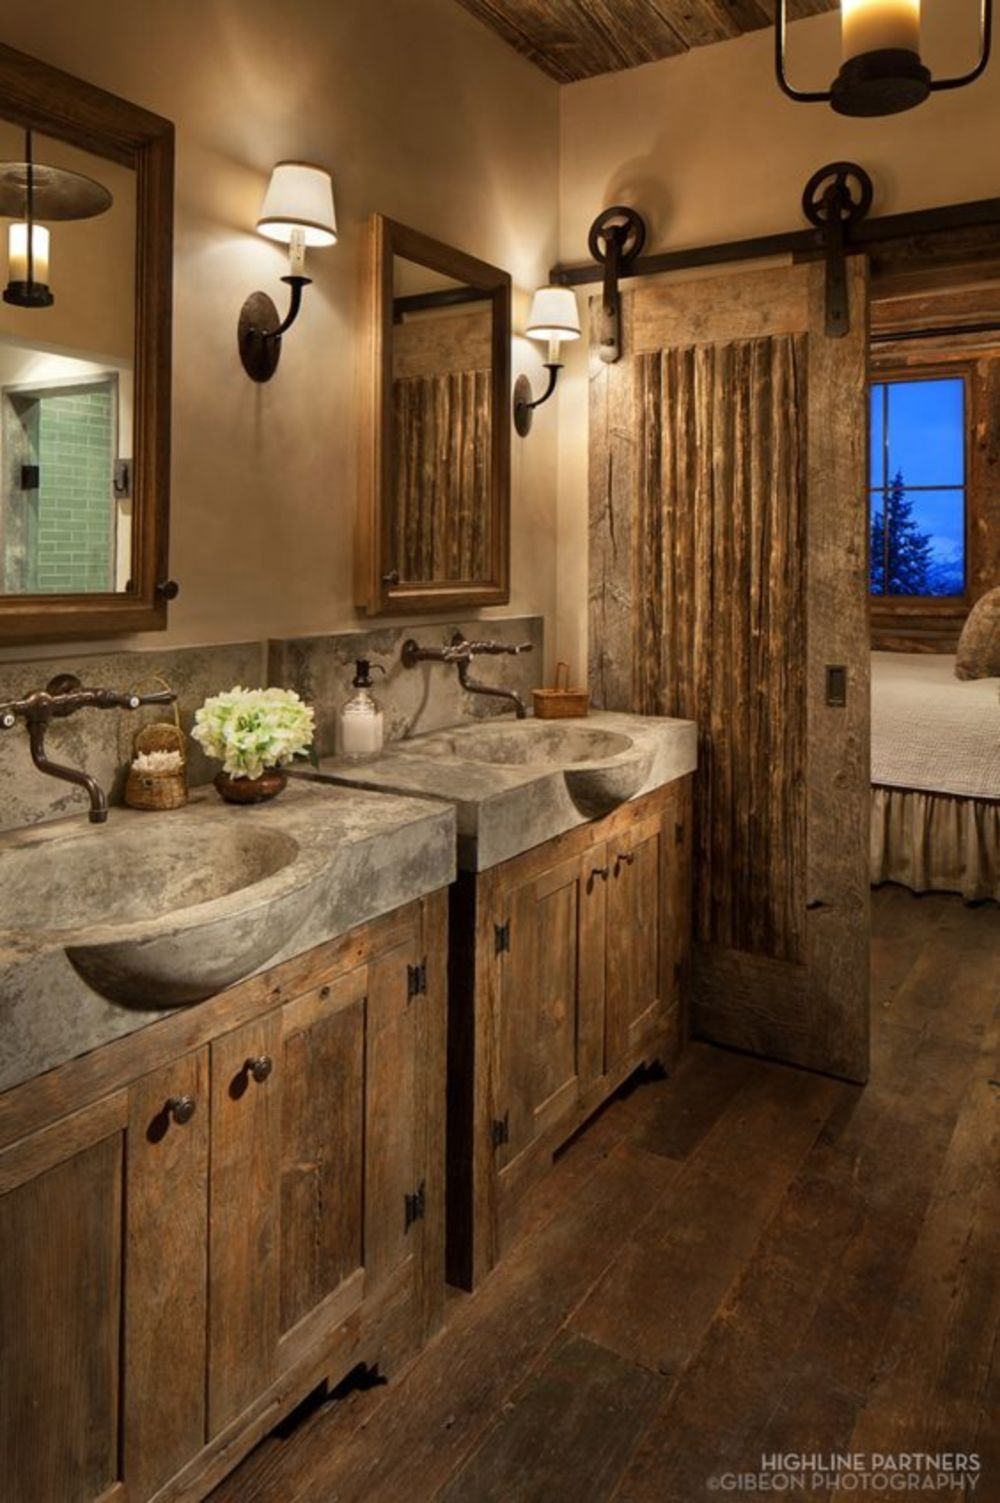 Bon 46 Wonderful Rustic Bathroom Decorating Ideas | HOMEDECORT